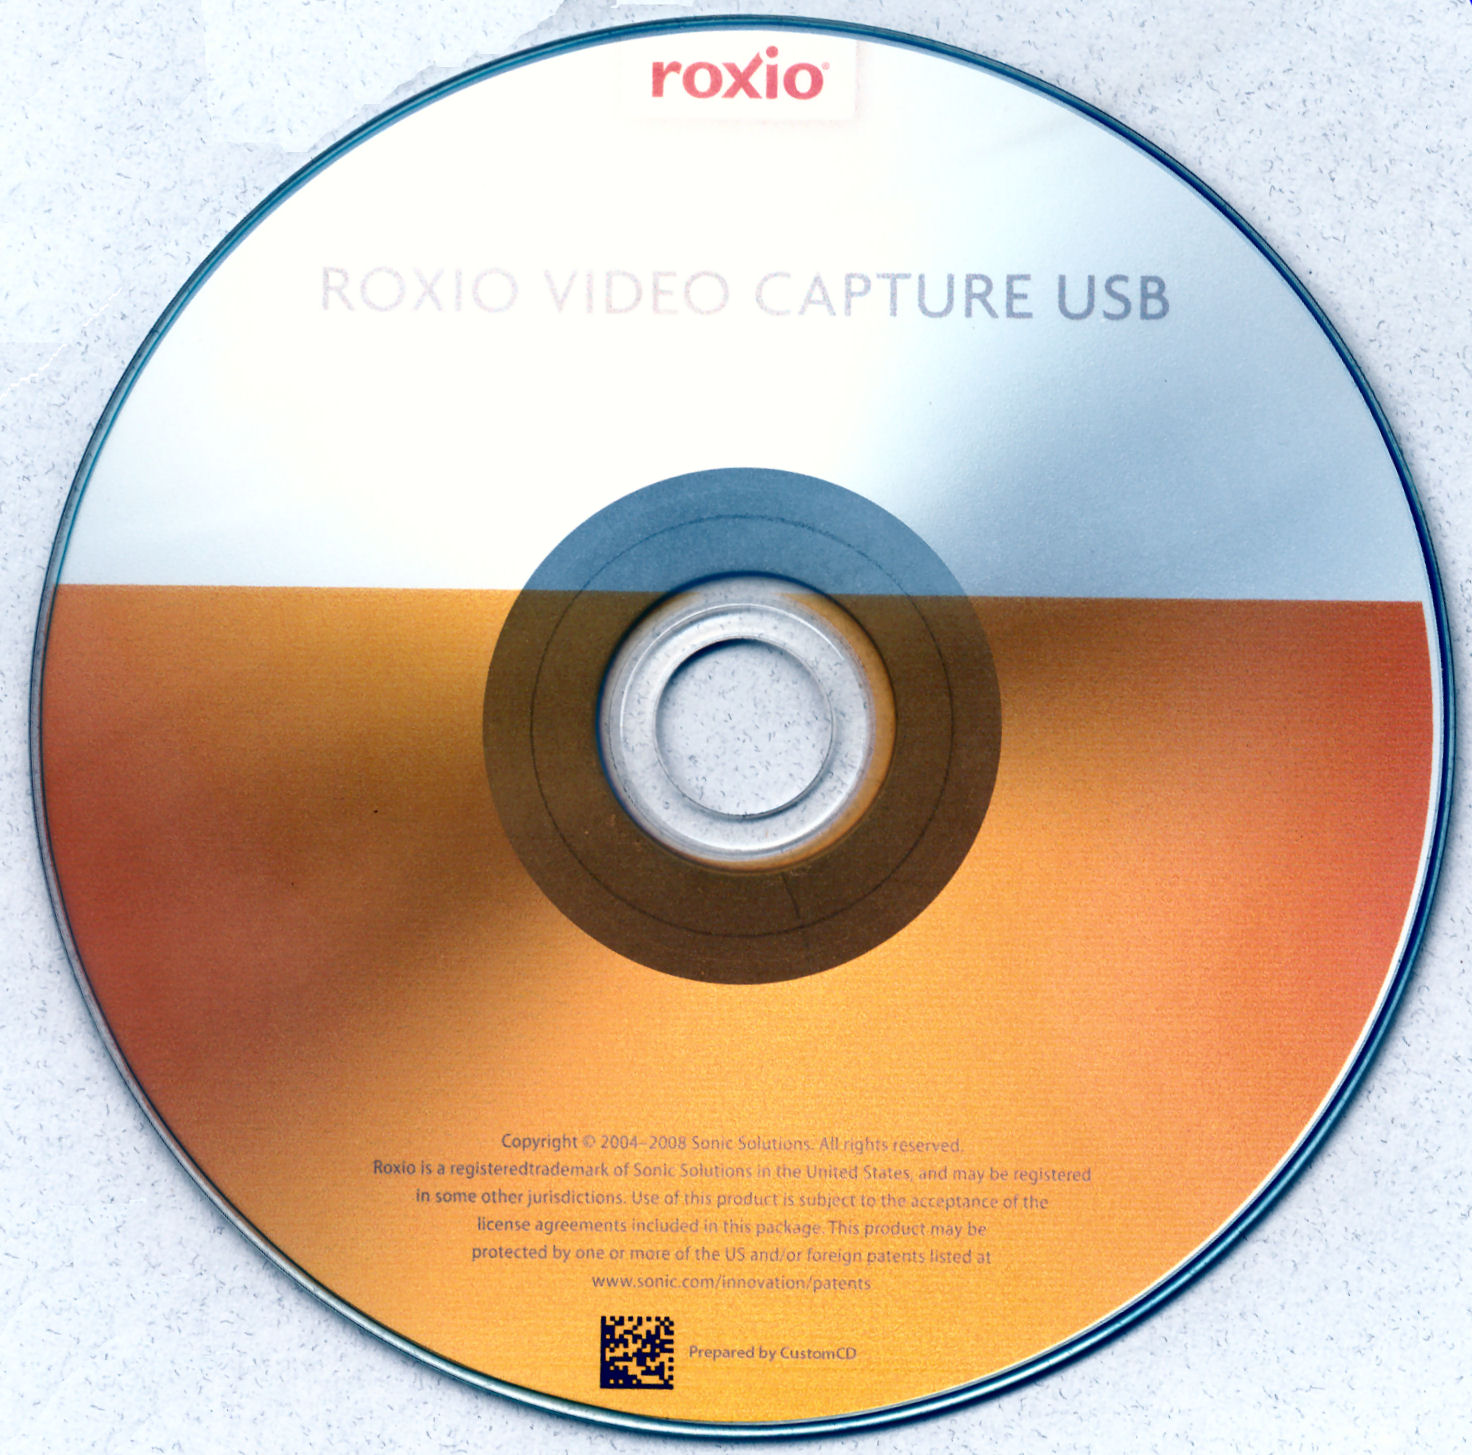 roxio video capture usb software mac